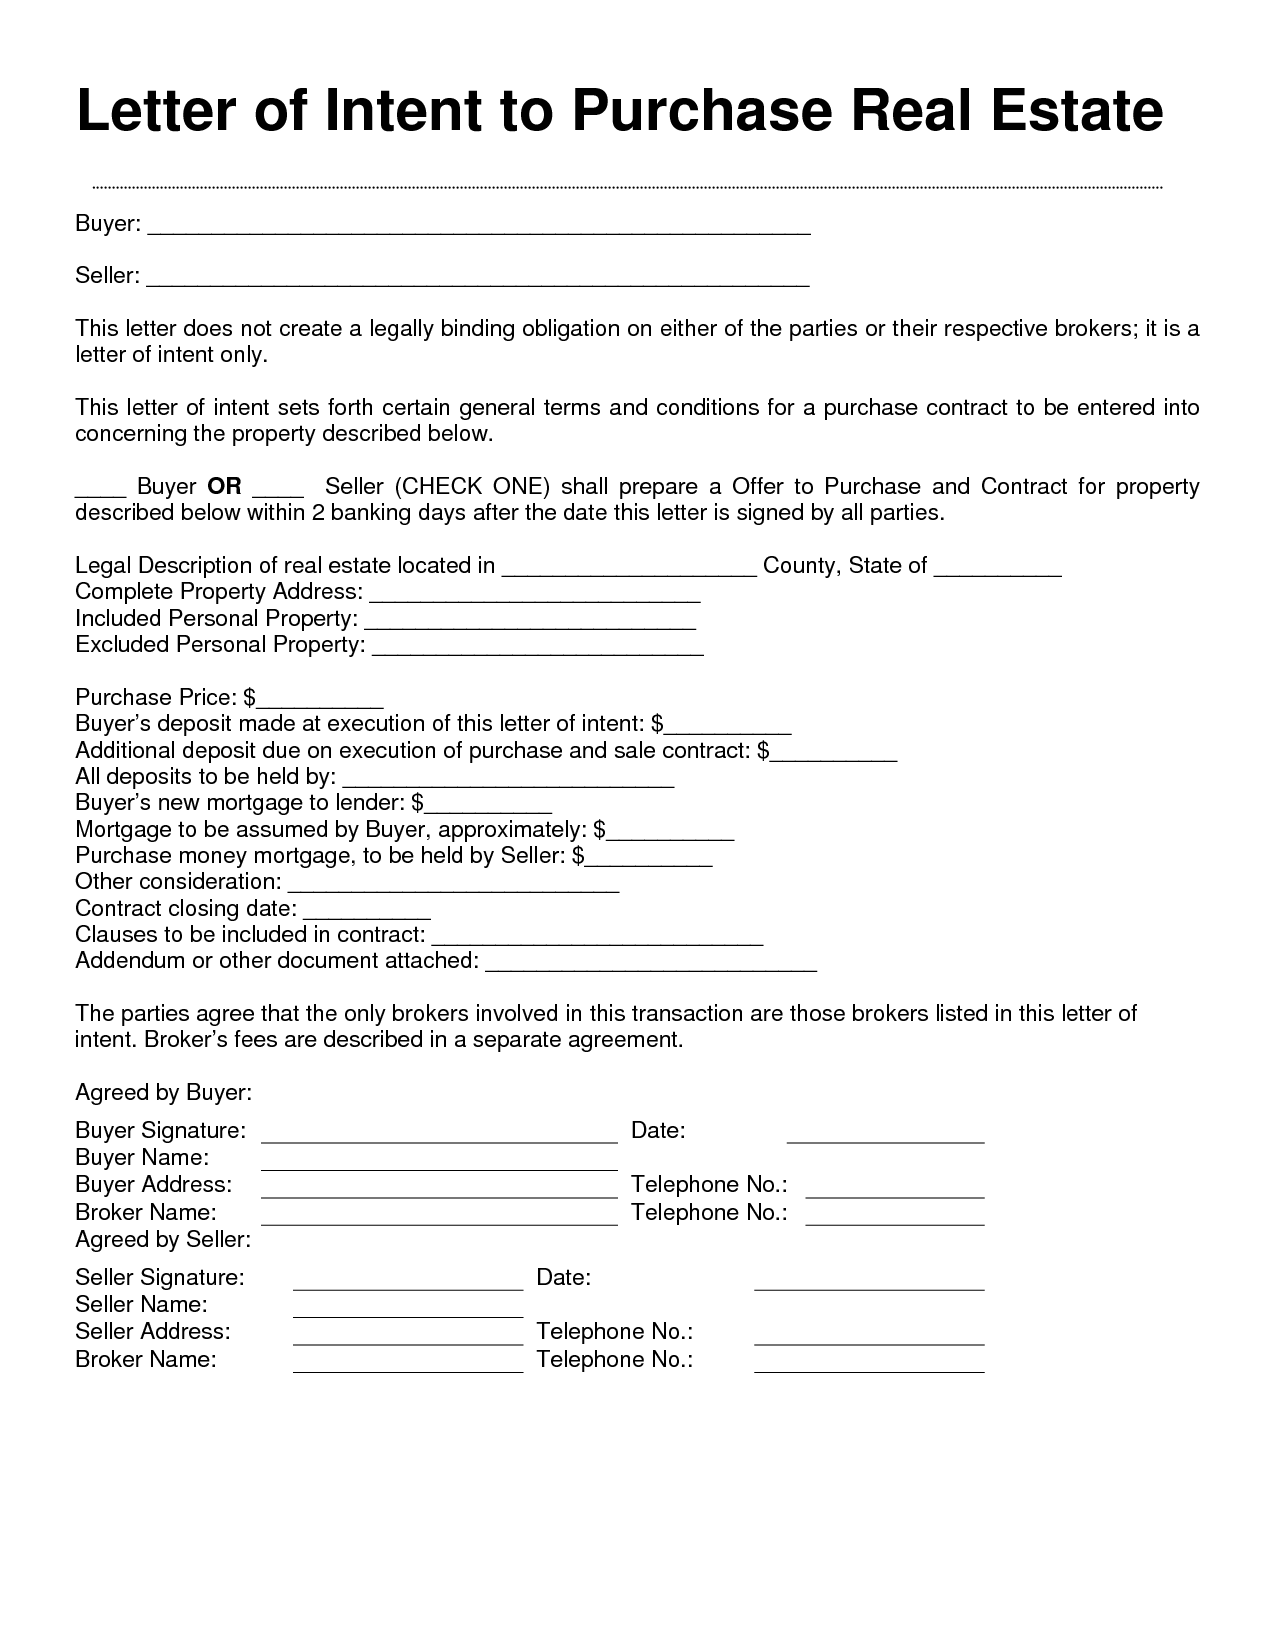 Letter Intent Real Estate Free Printable Documents